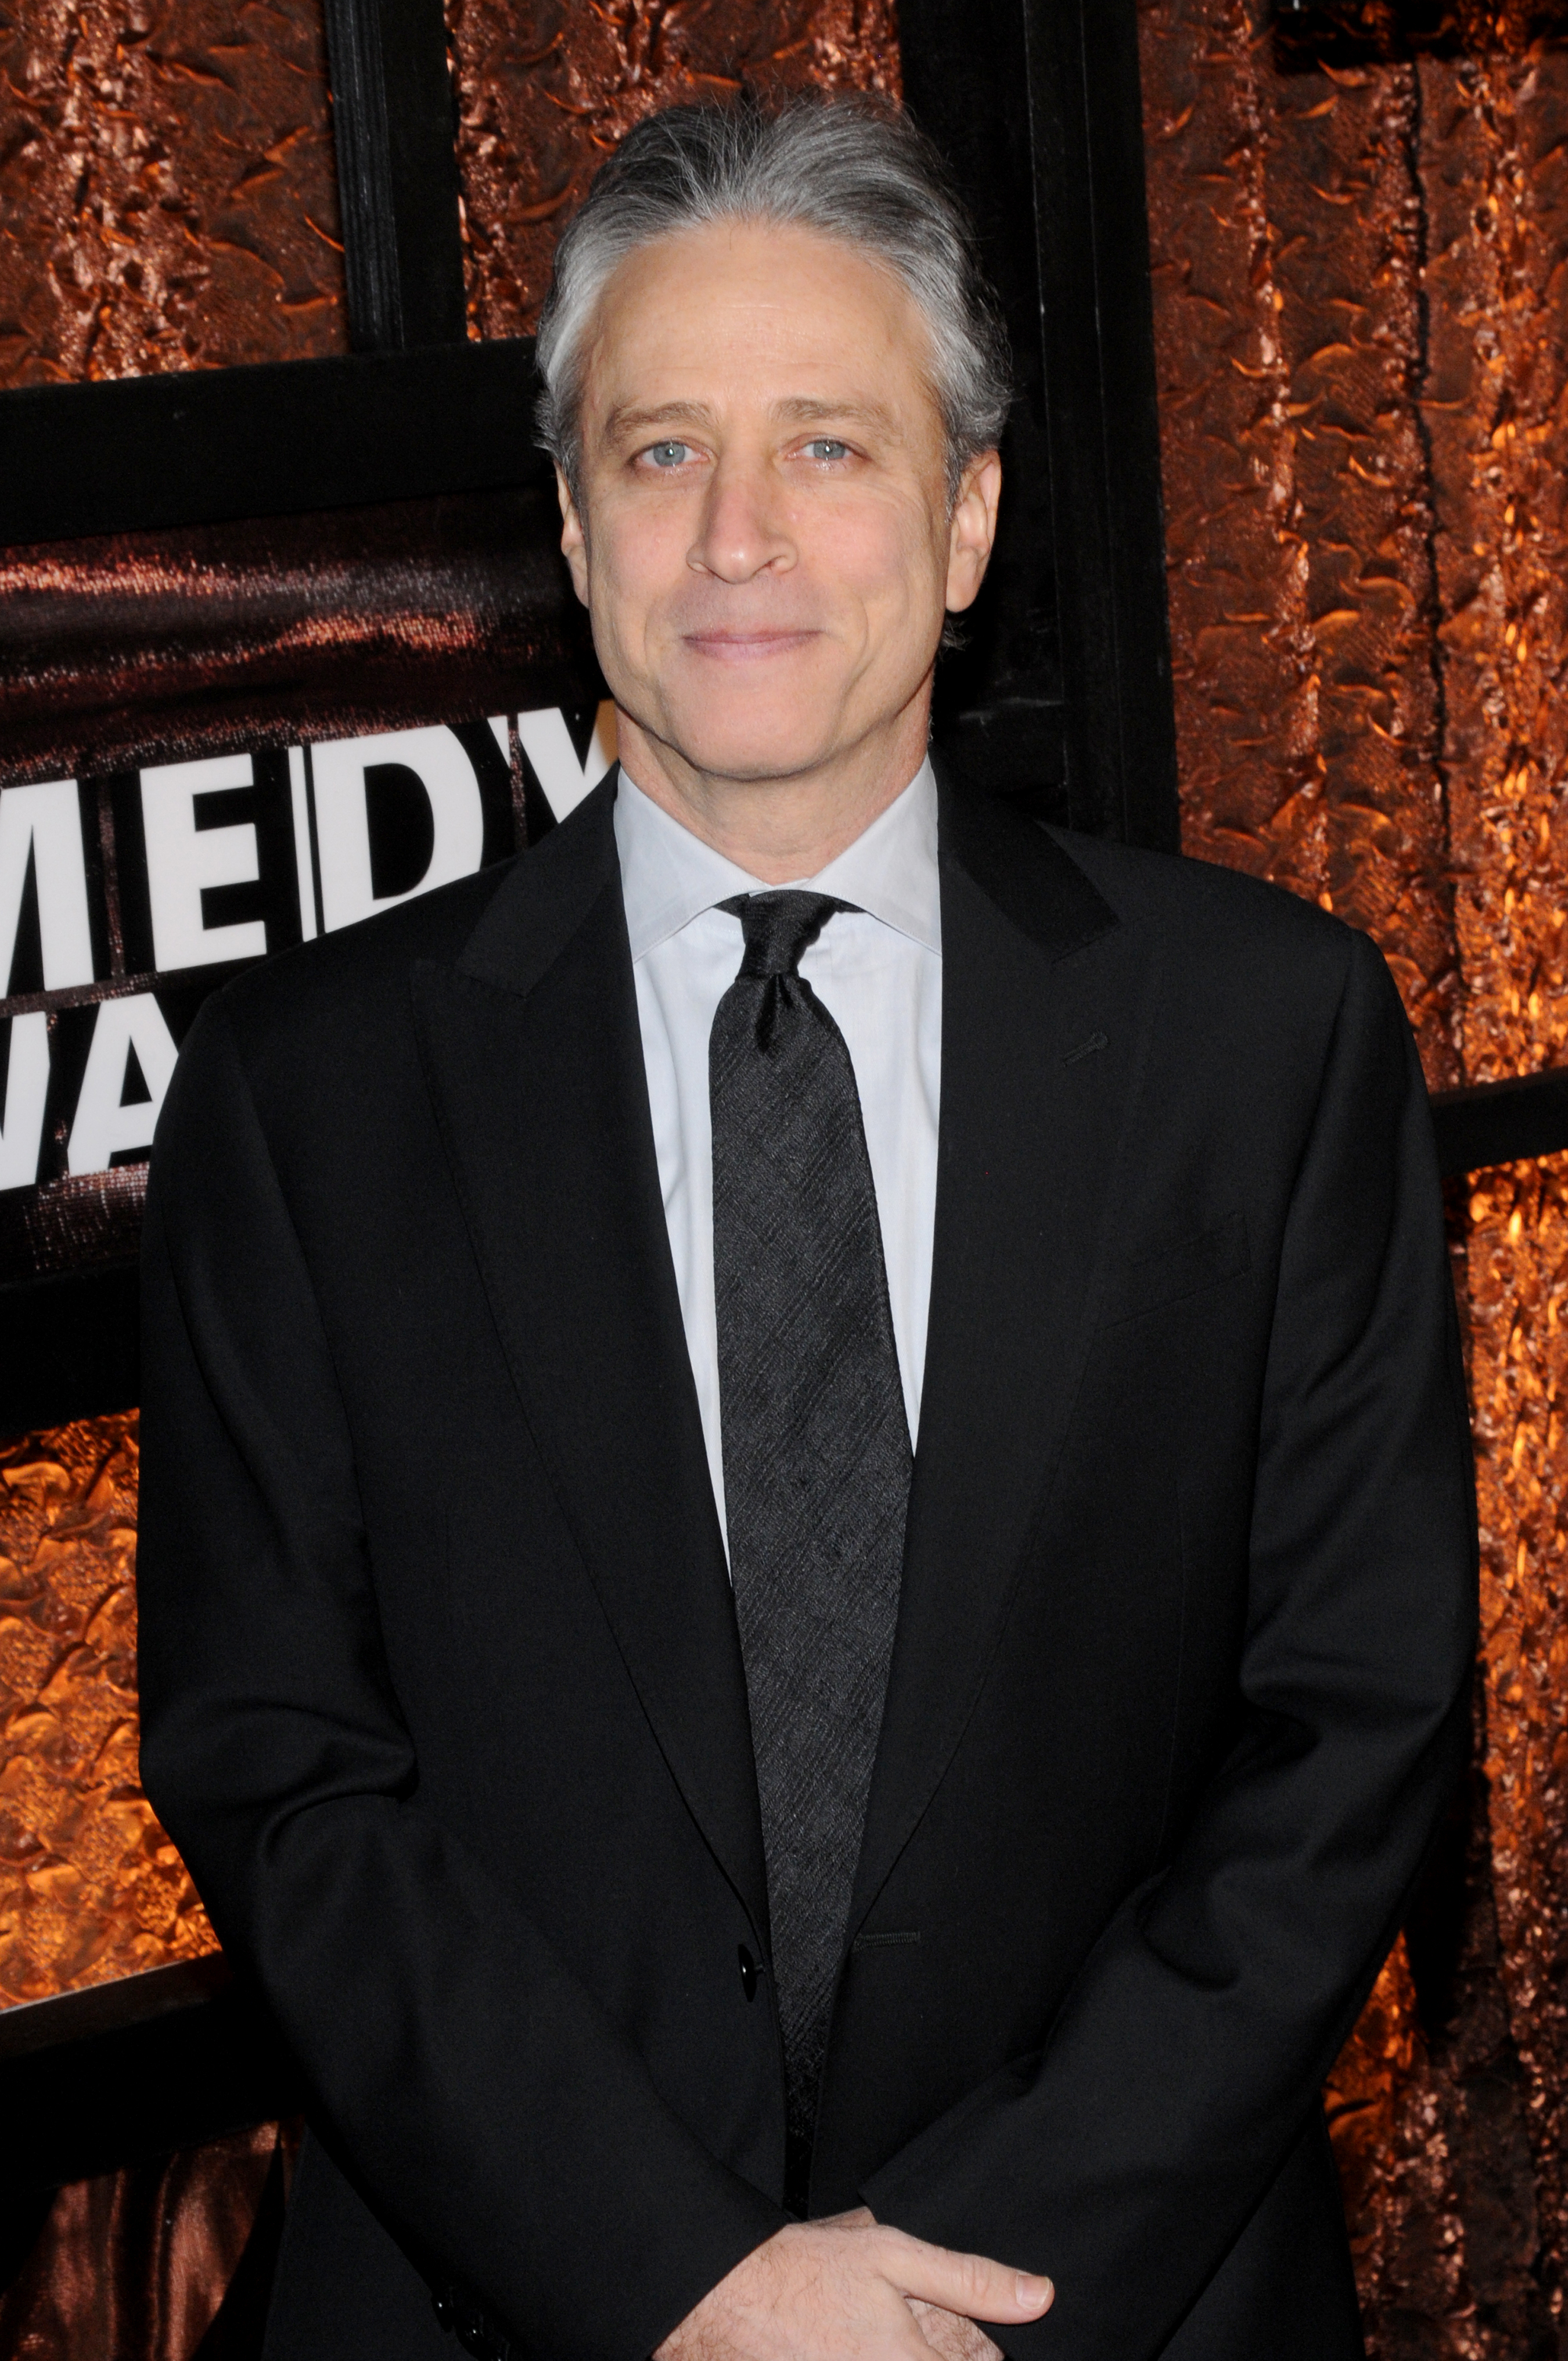 Jon Stewart wants to spend more time at home post 'Daily Show'